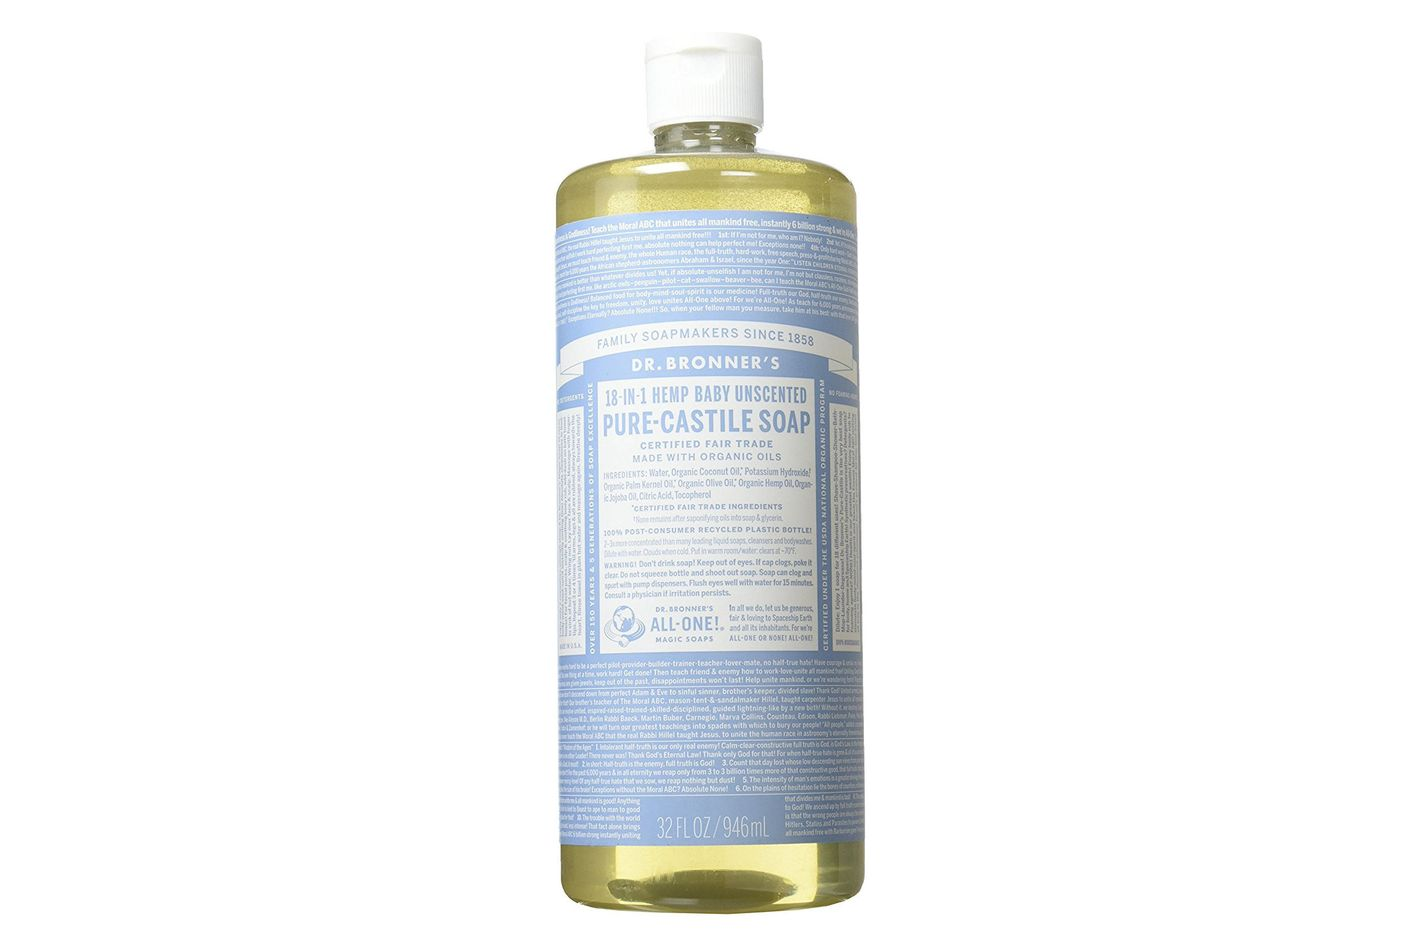 Dr. Bronner Pure-Castile Liquid Soap Baby Unscented, 32 oz.